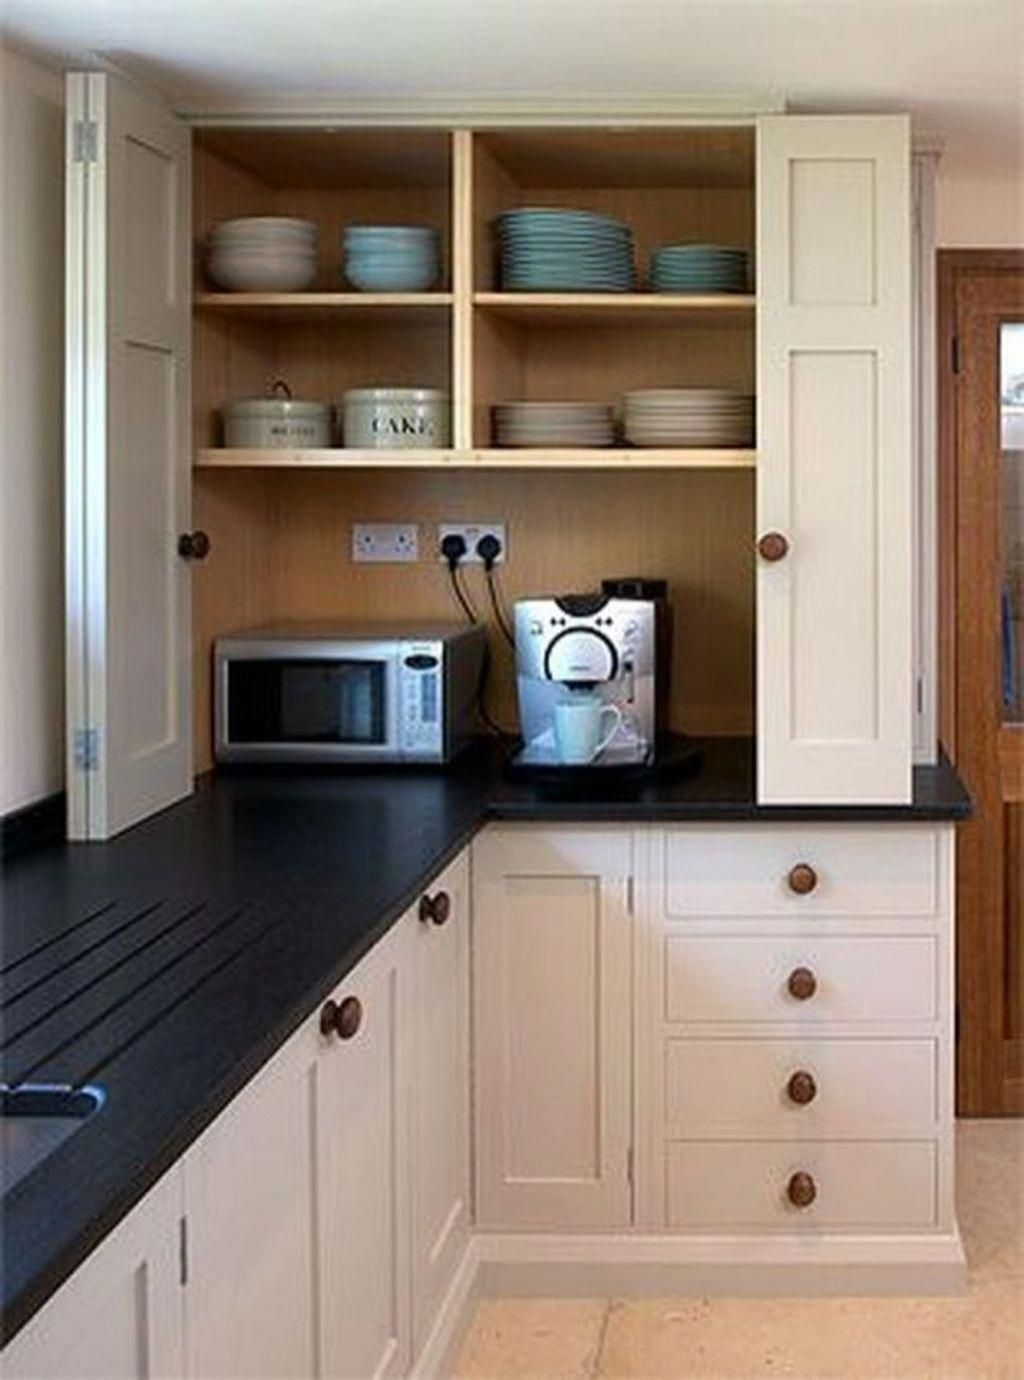 Awesome elegant small kitchen ideas remodel